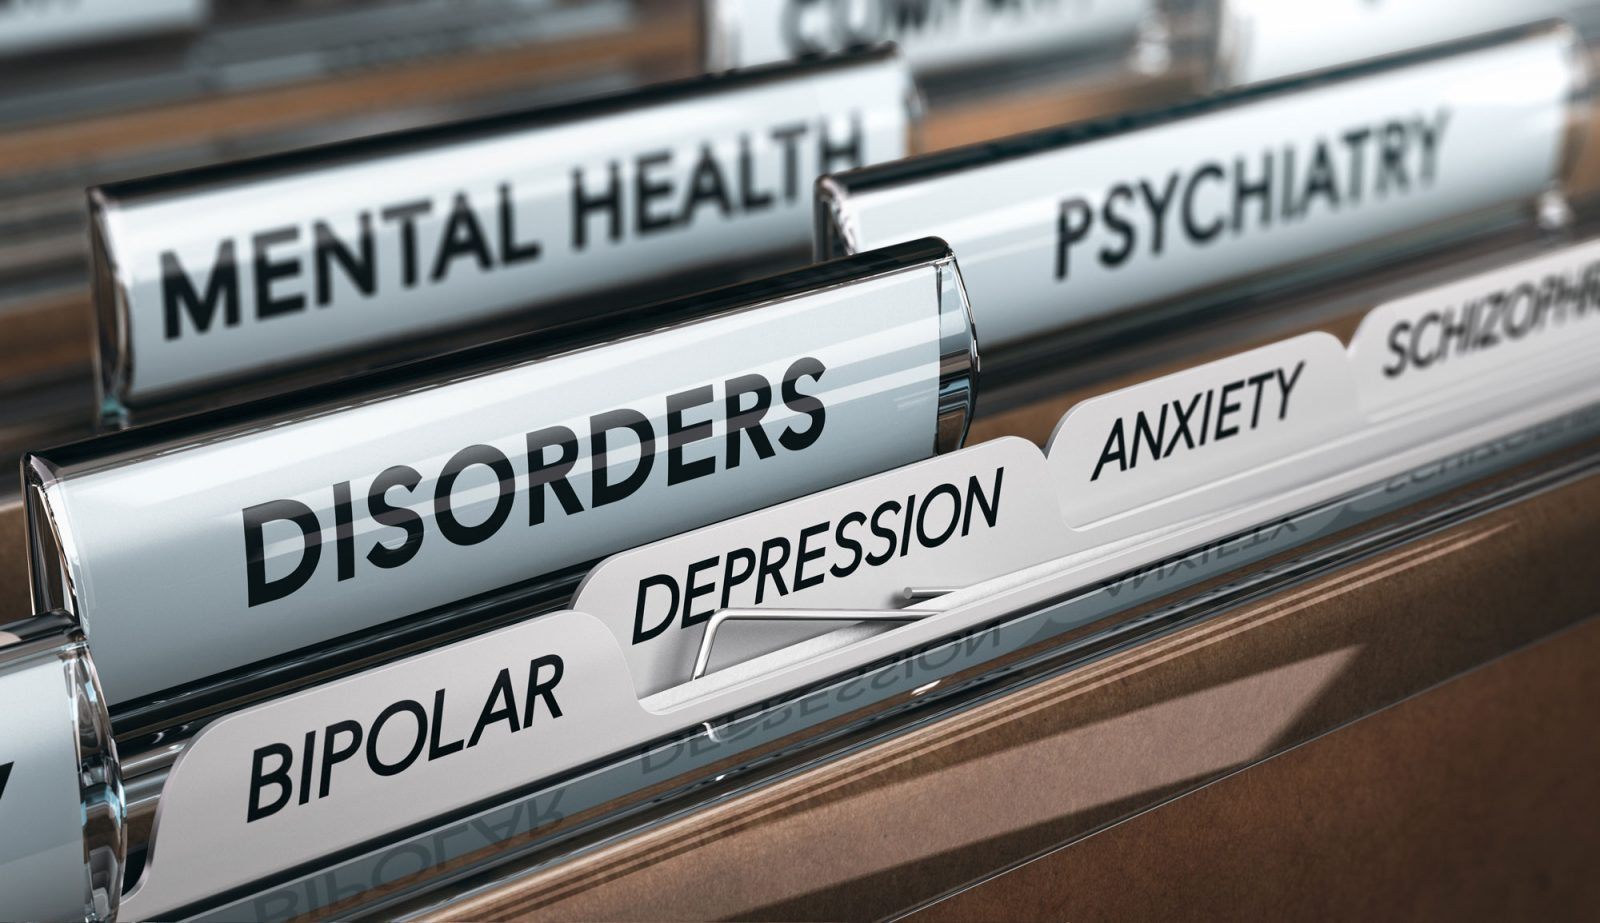 TOP MENTAL HEALTH HOSPITALS IN FLORIDA